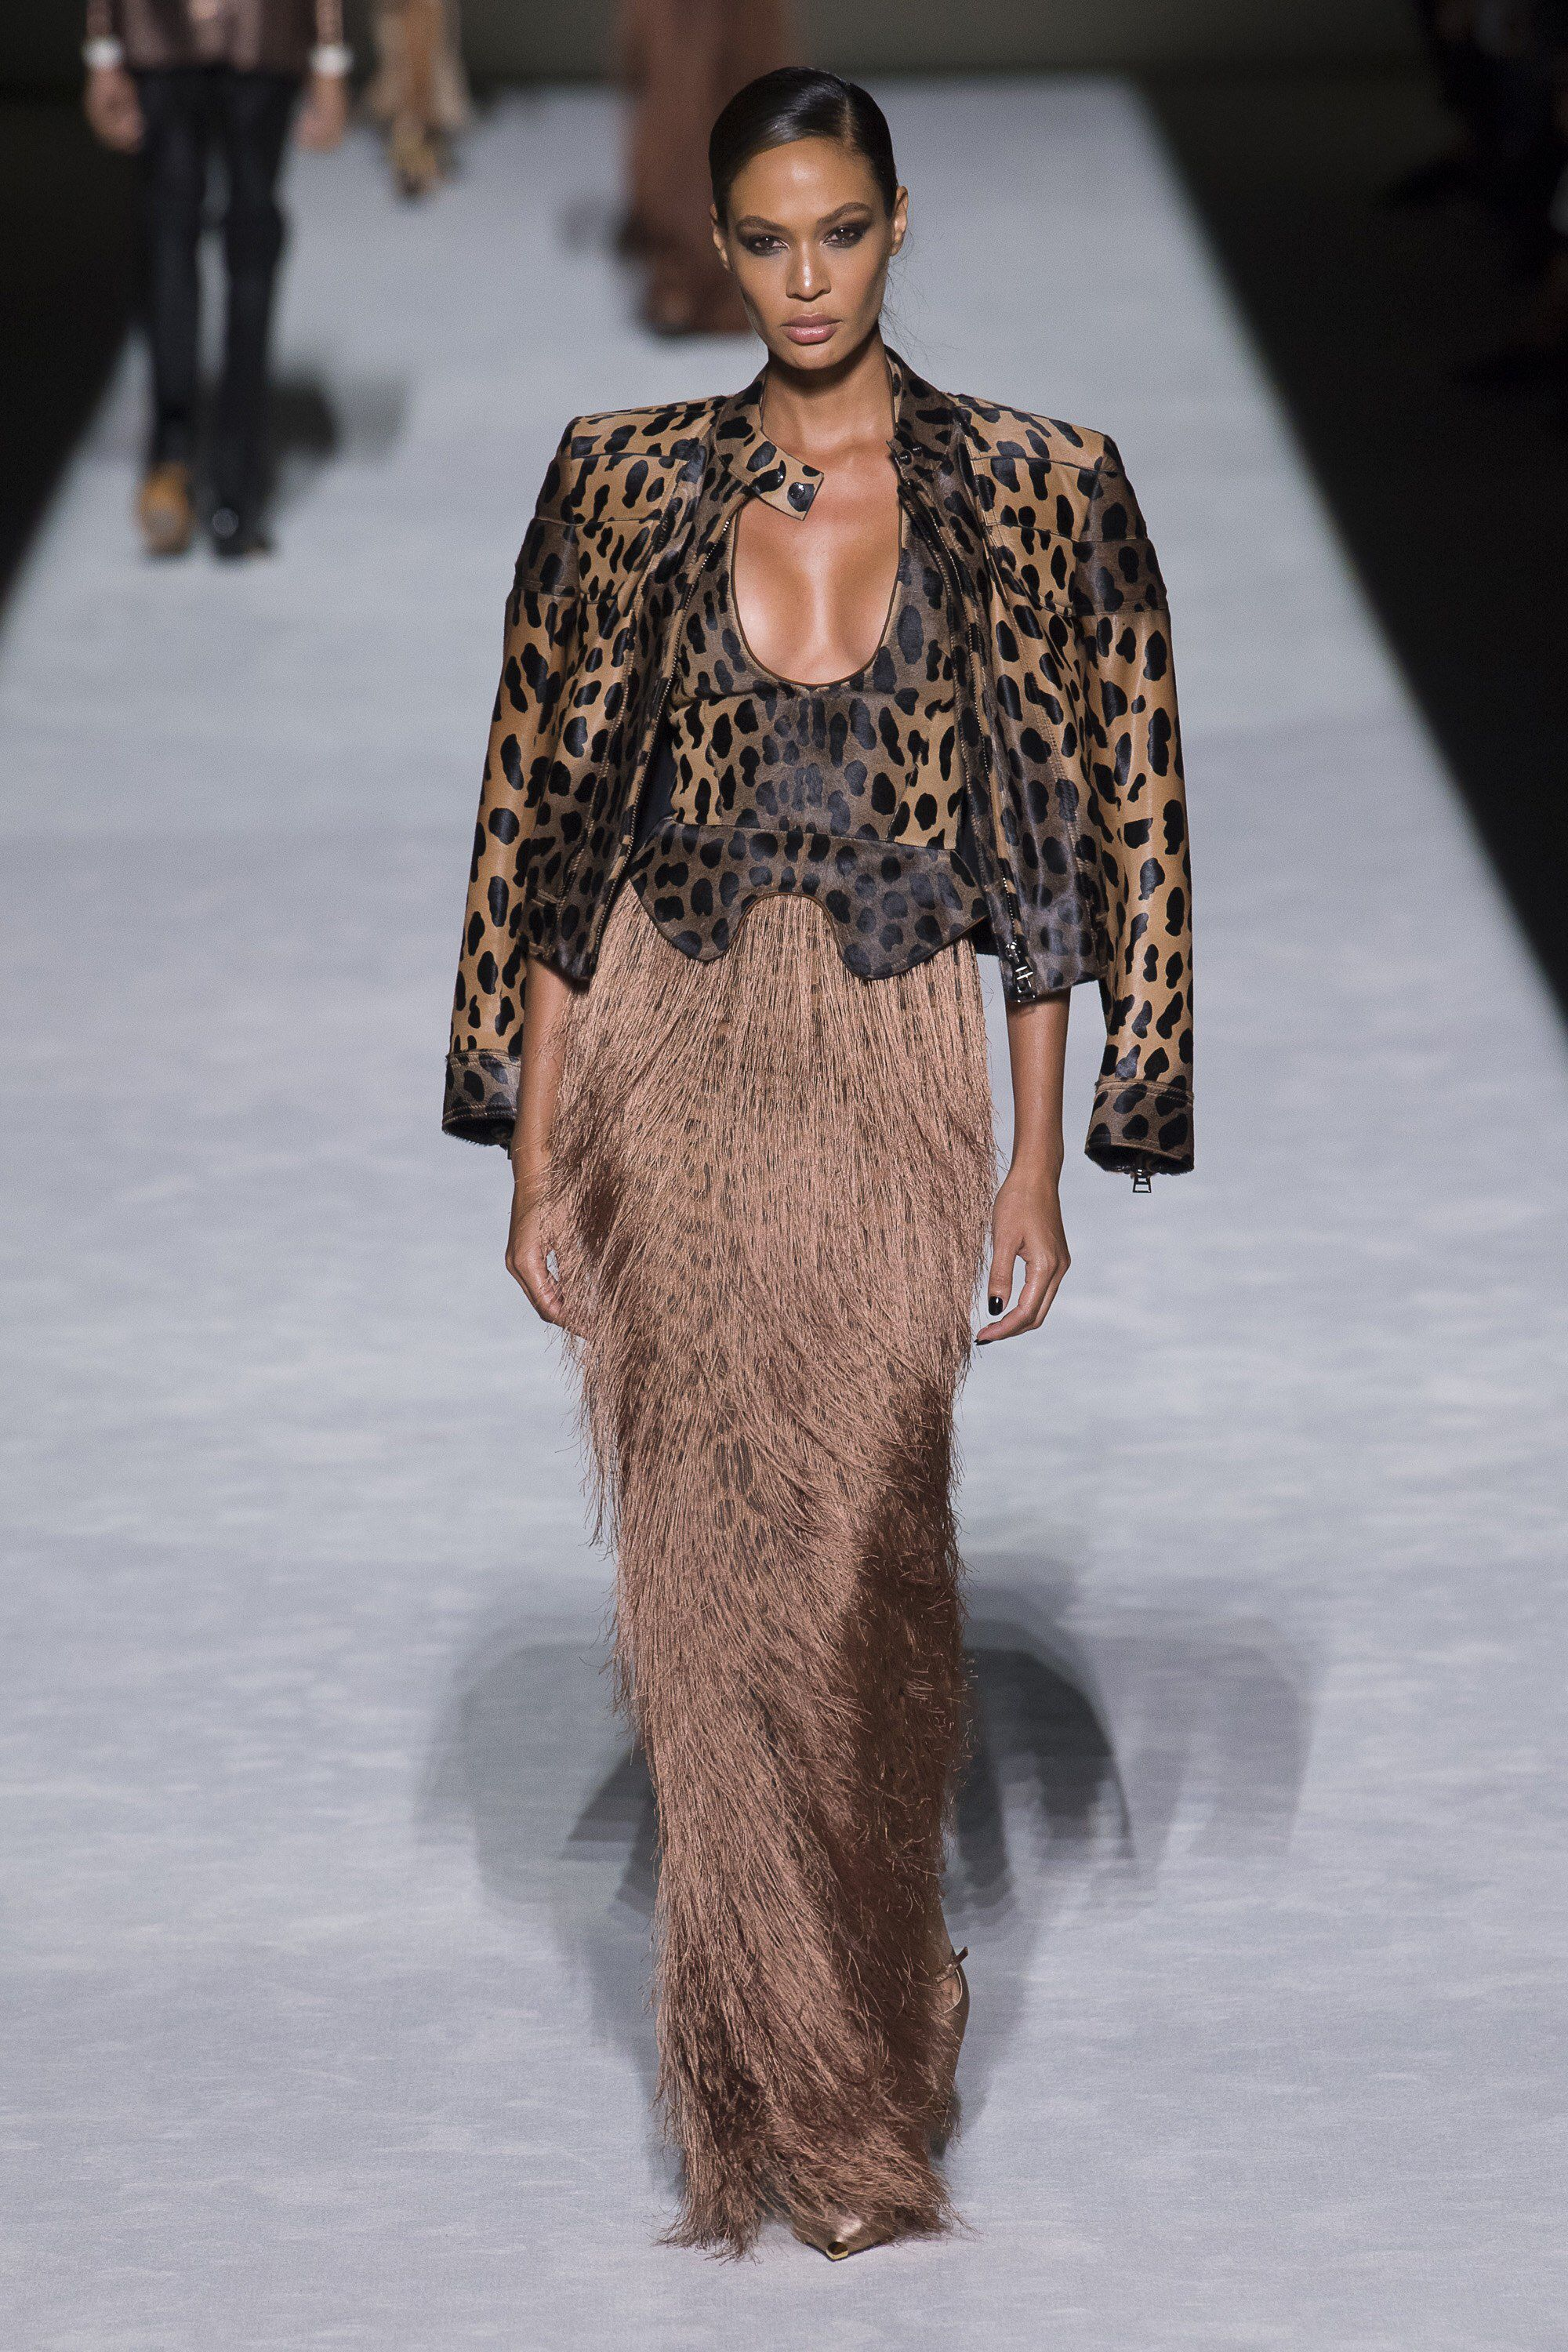 Tom Ford Spring 2019 Ready-to-Wear Fashion Show Collection  See the  complete Tom Ford Spring 2019 Ready-to-Wear collection. Look 43 57c0d525cffa